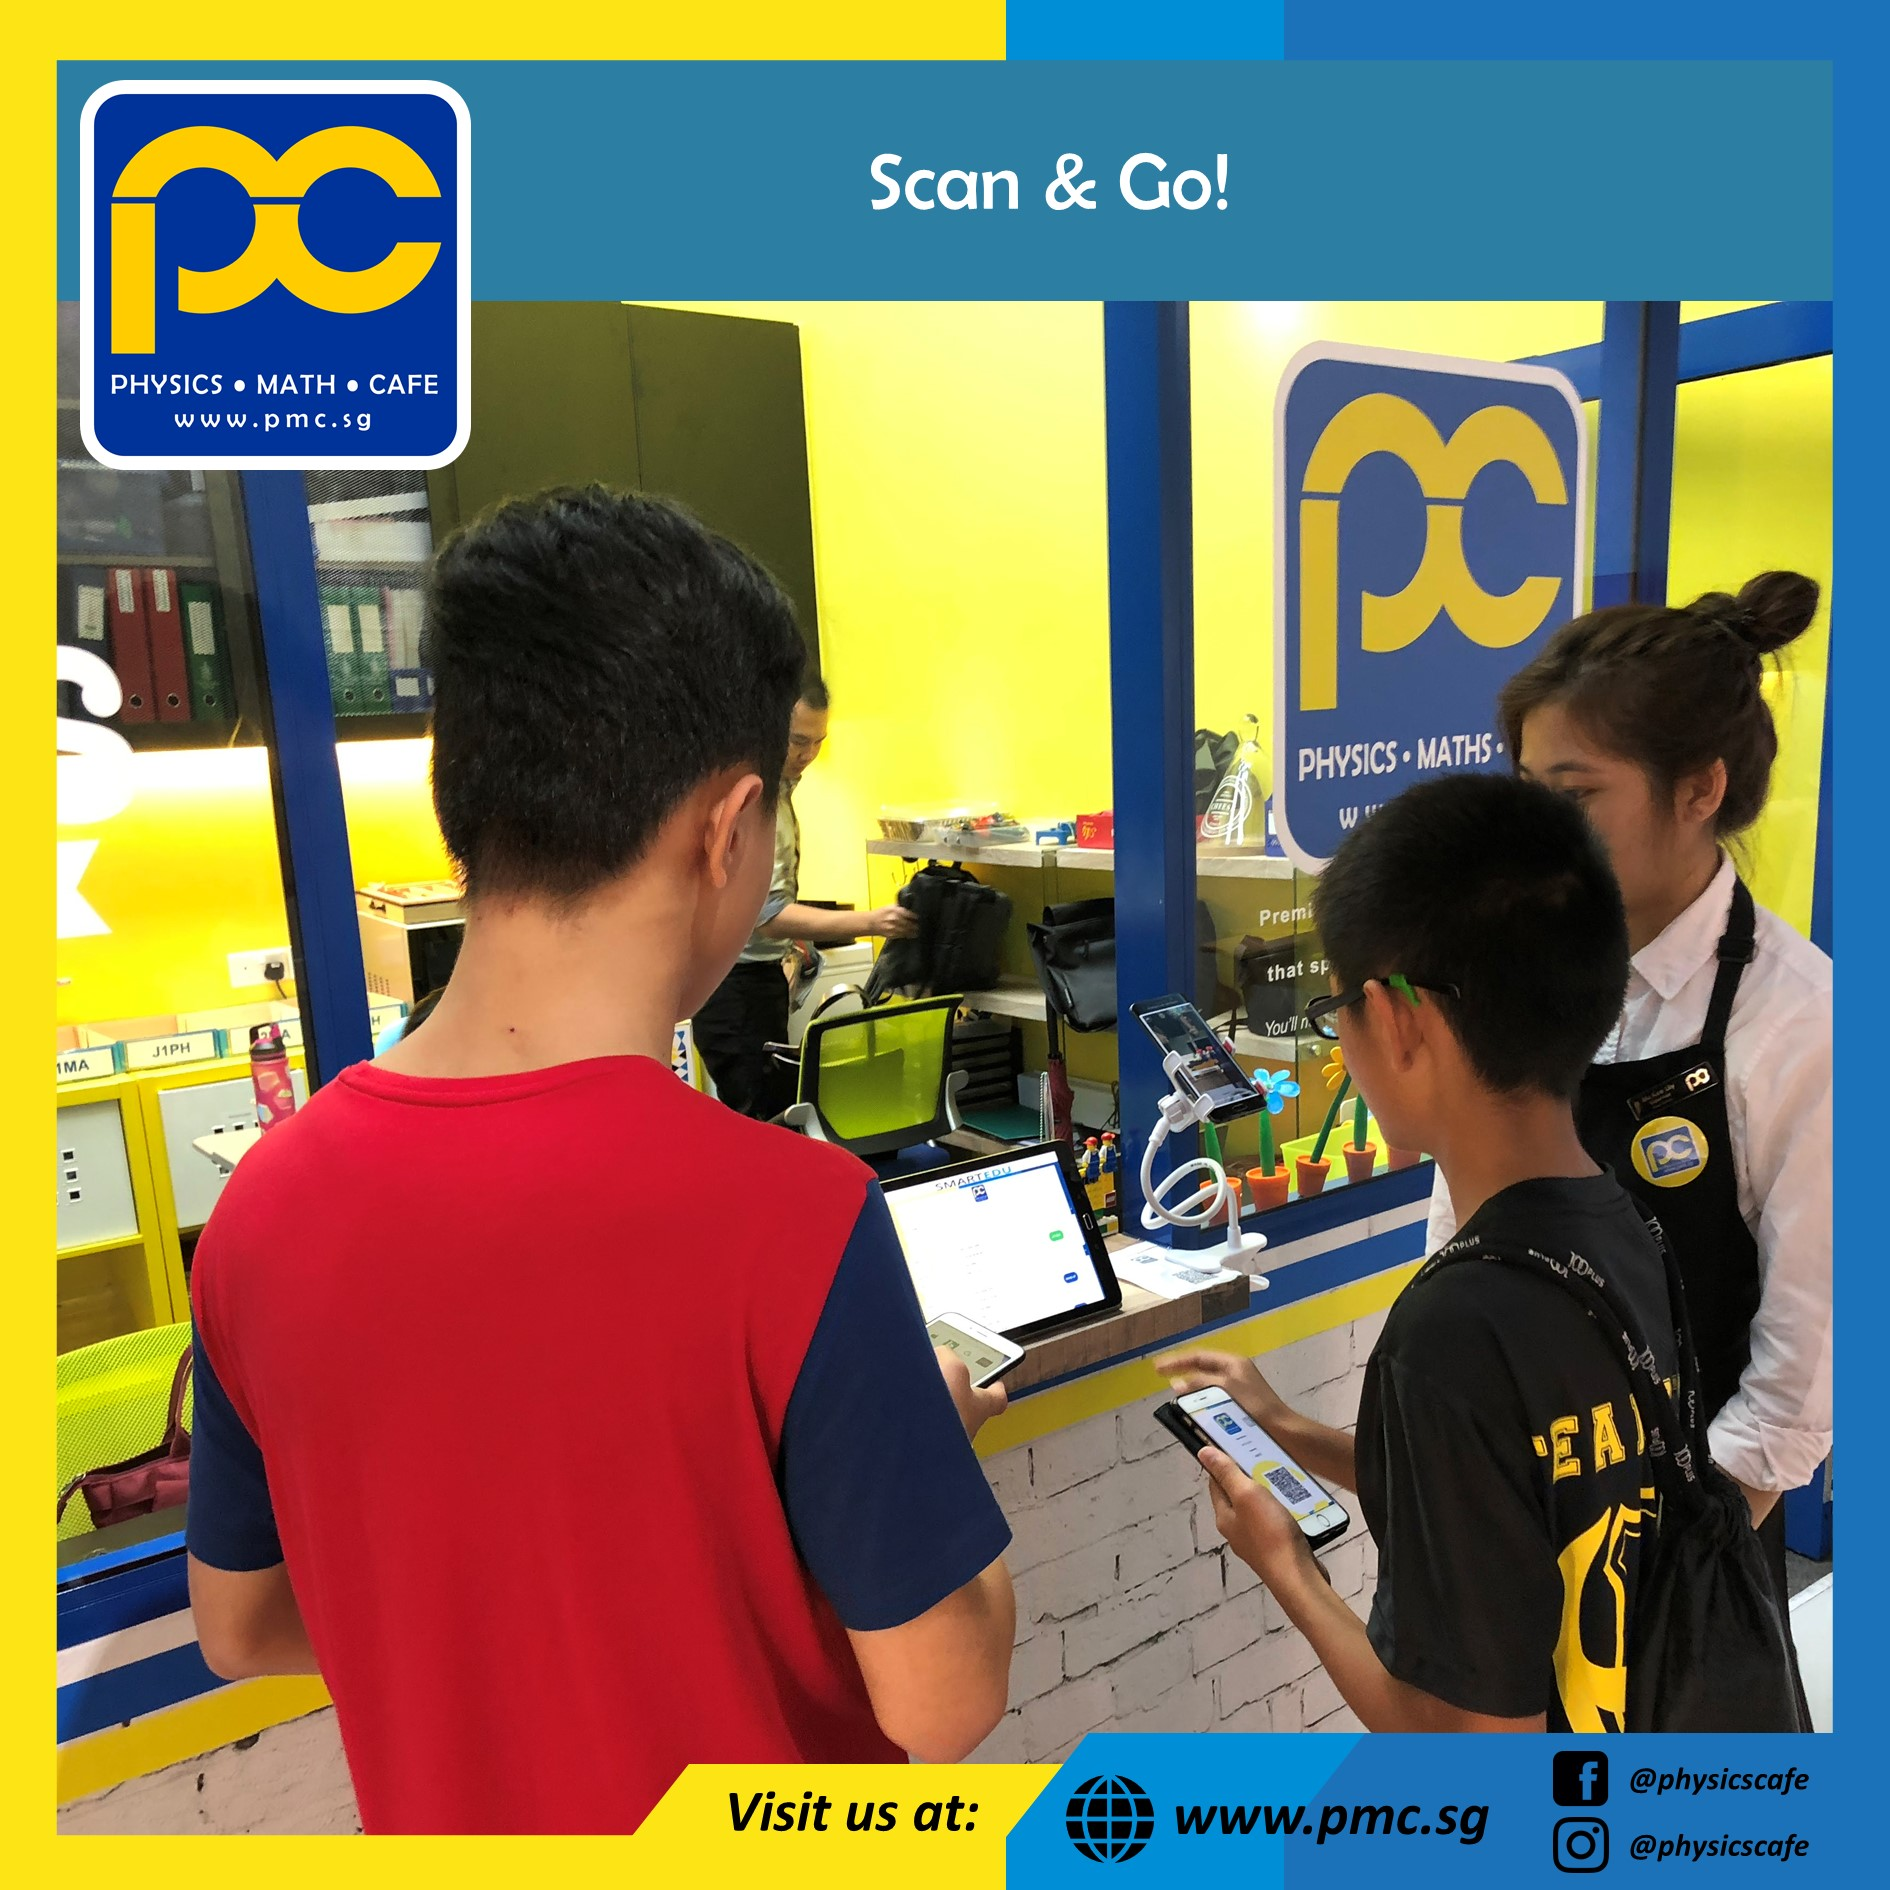 pmc scan & Go